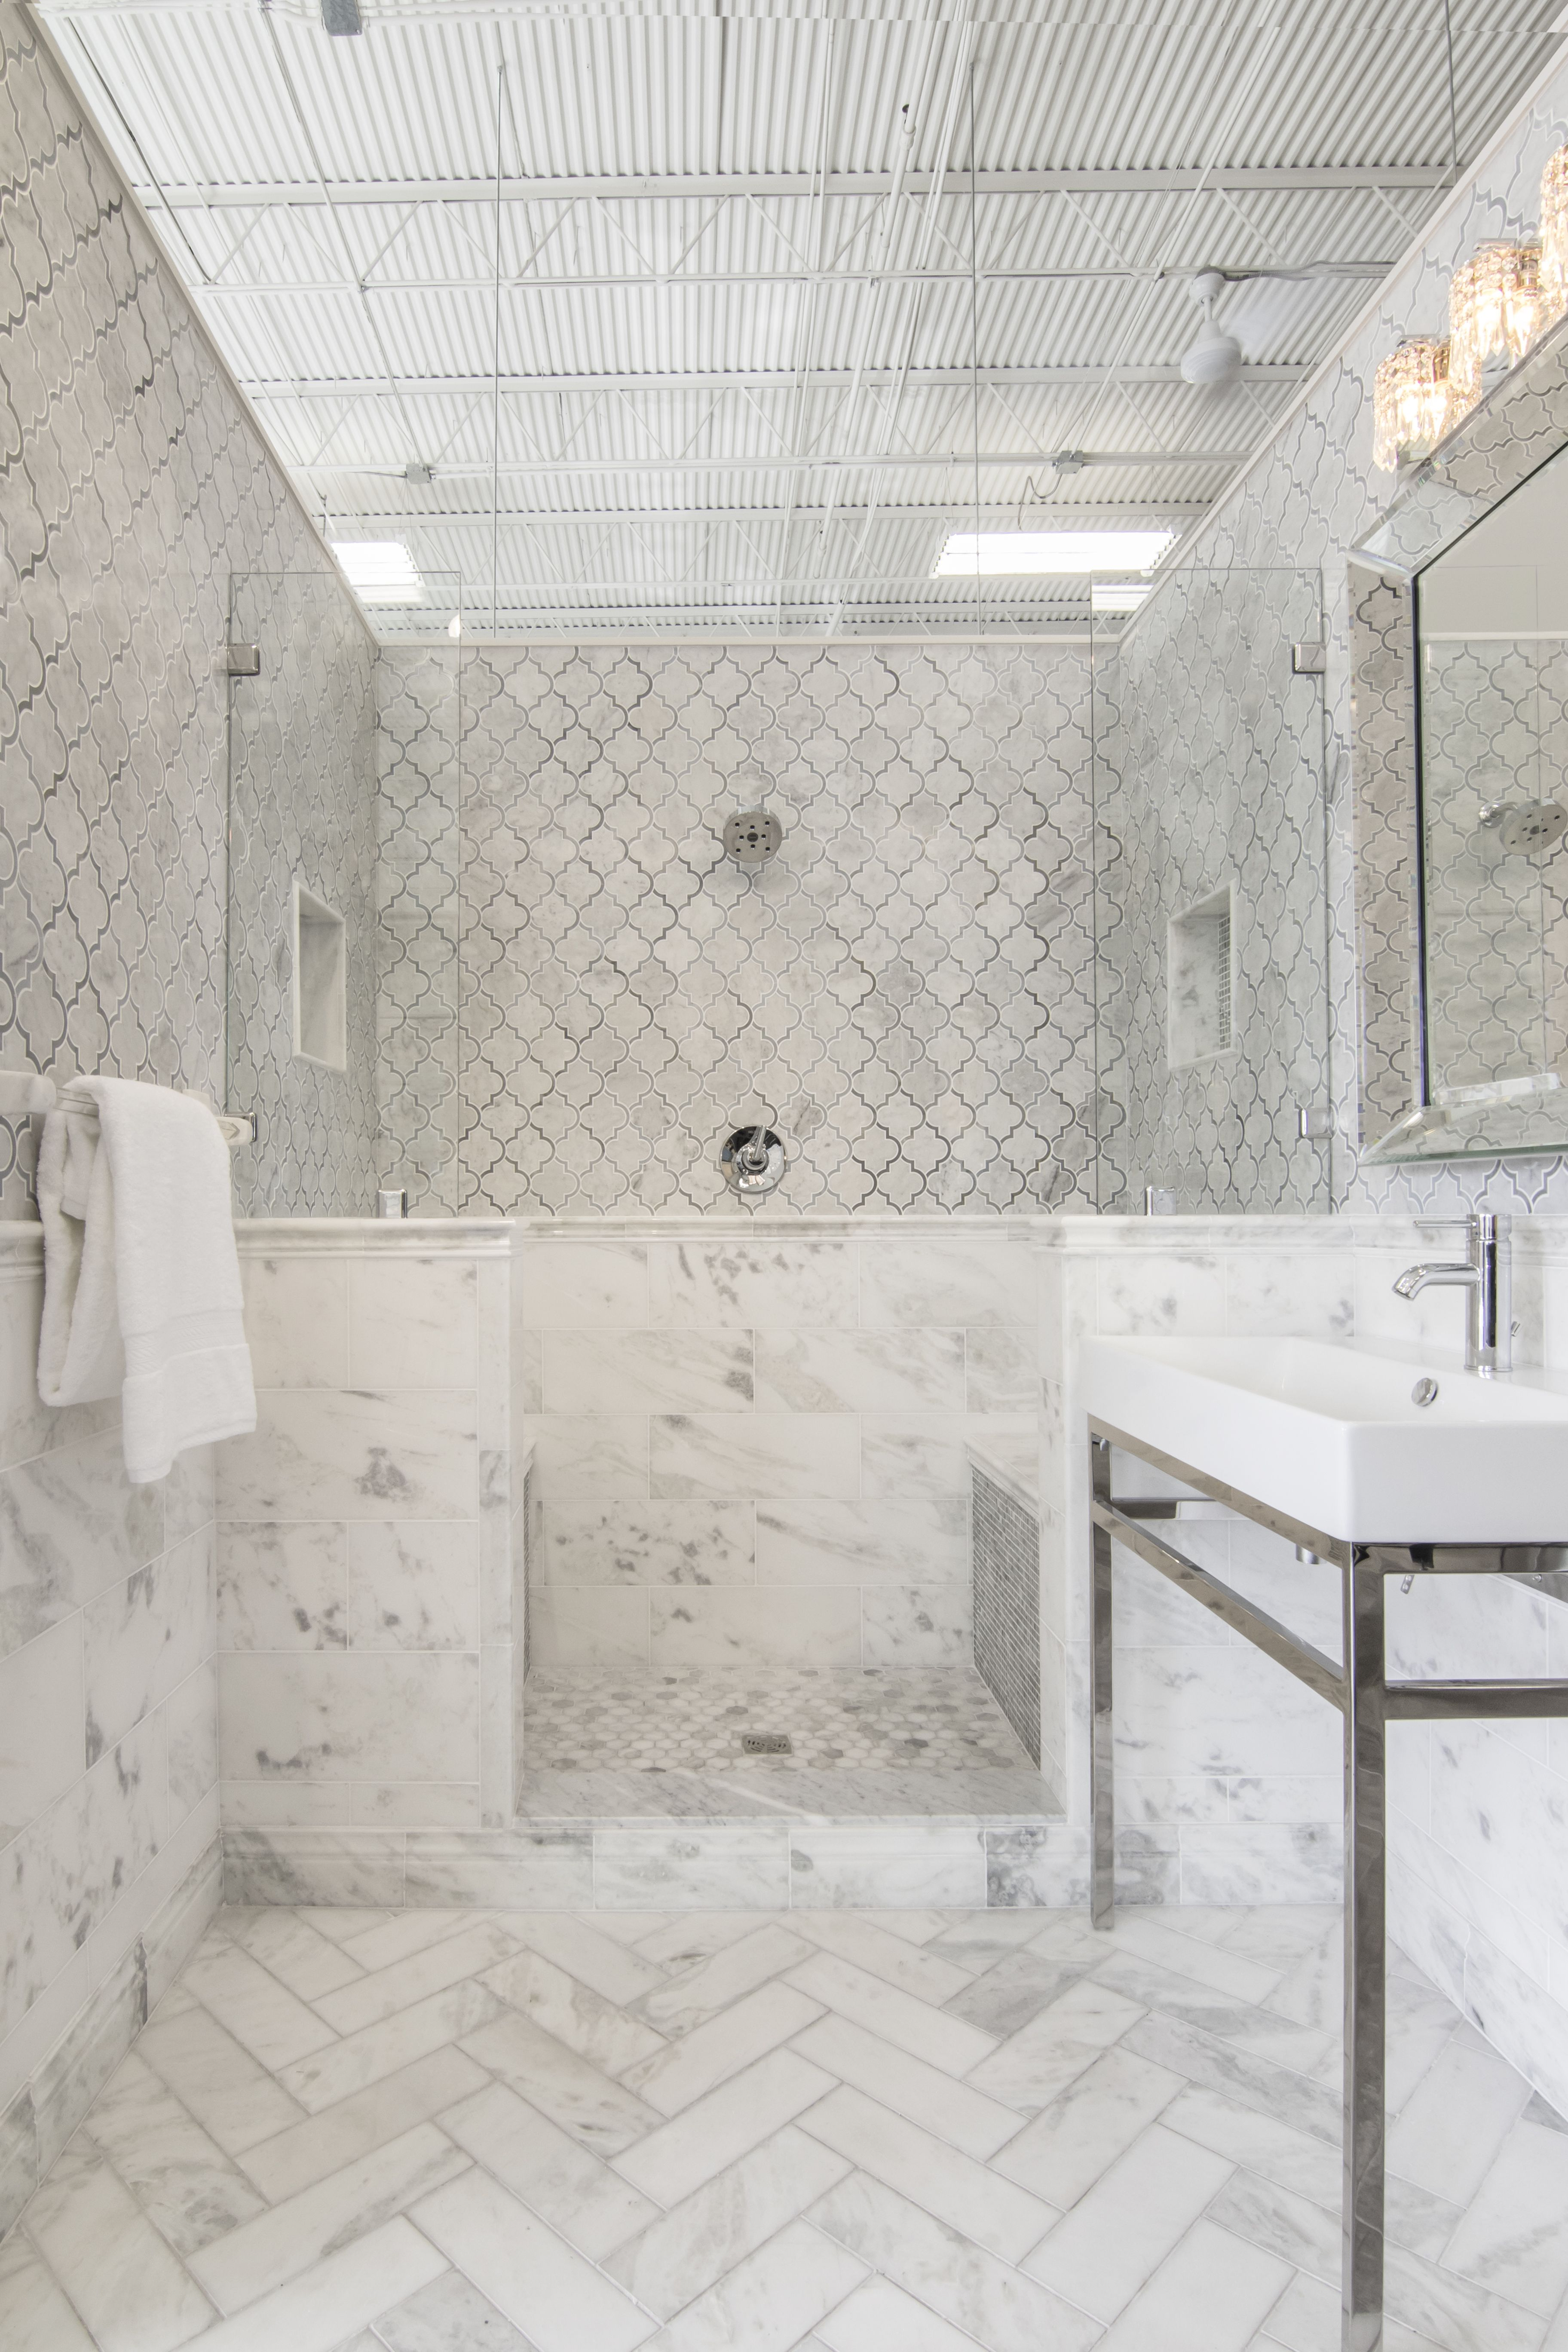 Bathroom floor tile - Tempesta Neve Polished Marble subway tile ...